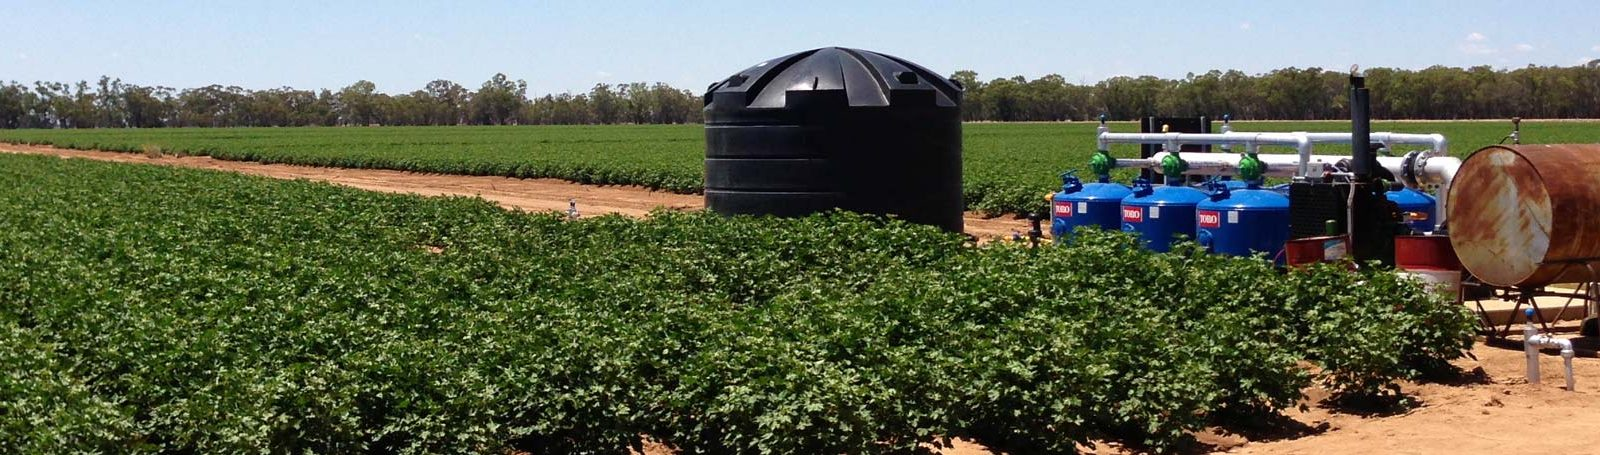 Drip Irrigation Services - Agriculture